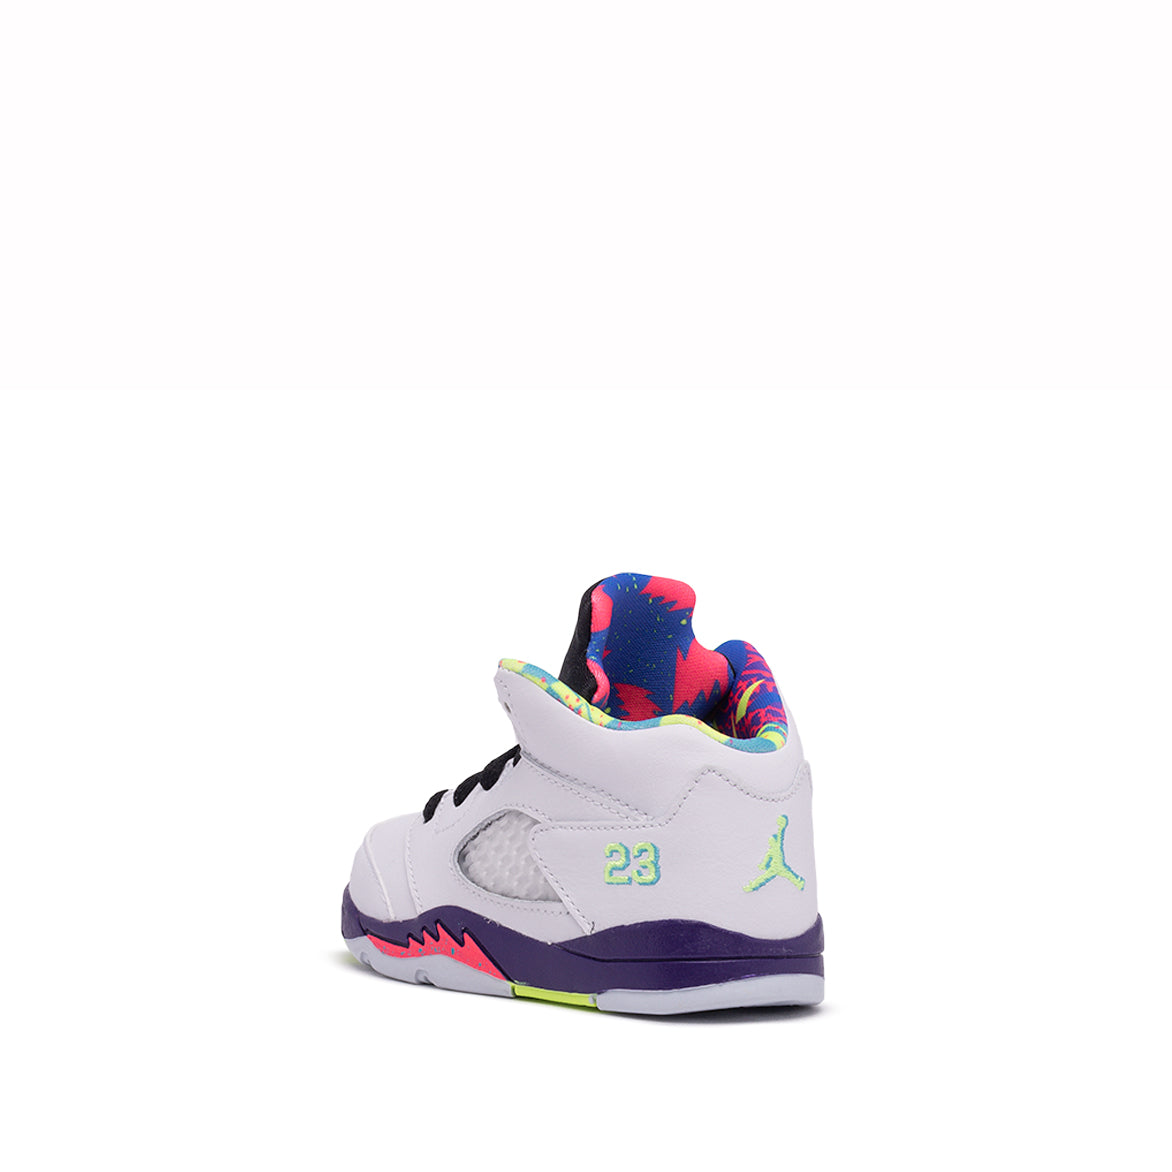 "AIR JORDAN 5 RETRO (TD) ""ALTERNATE BEL AIR"""